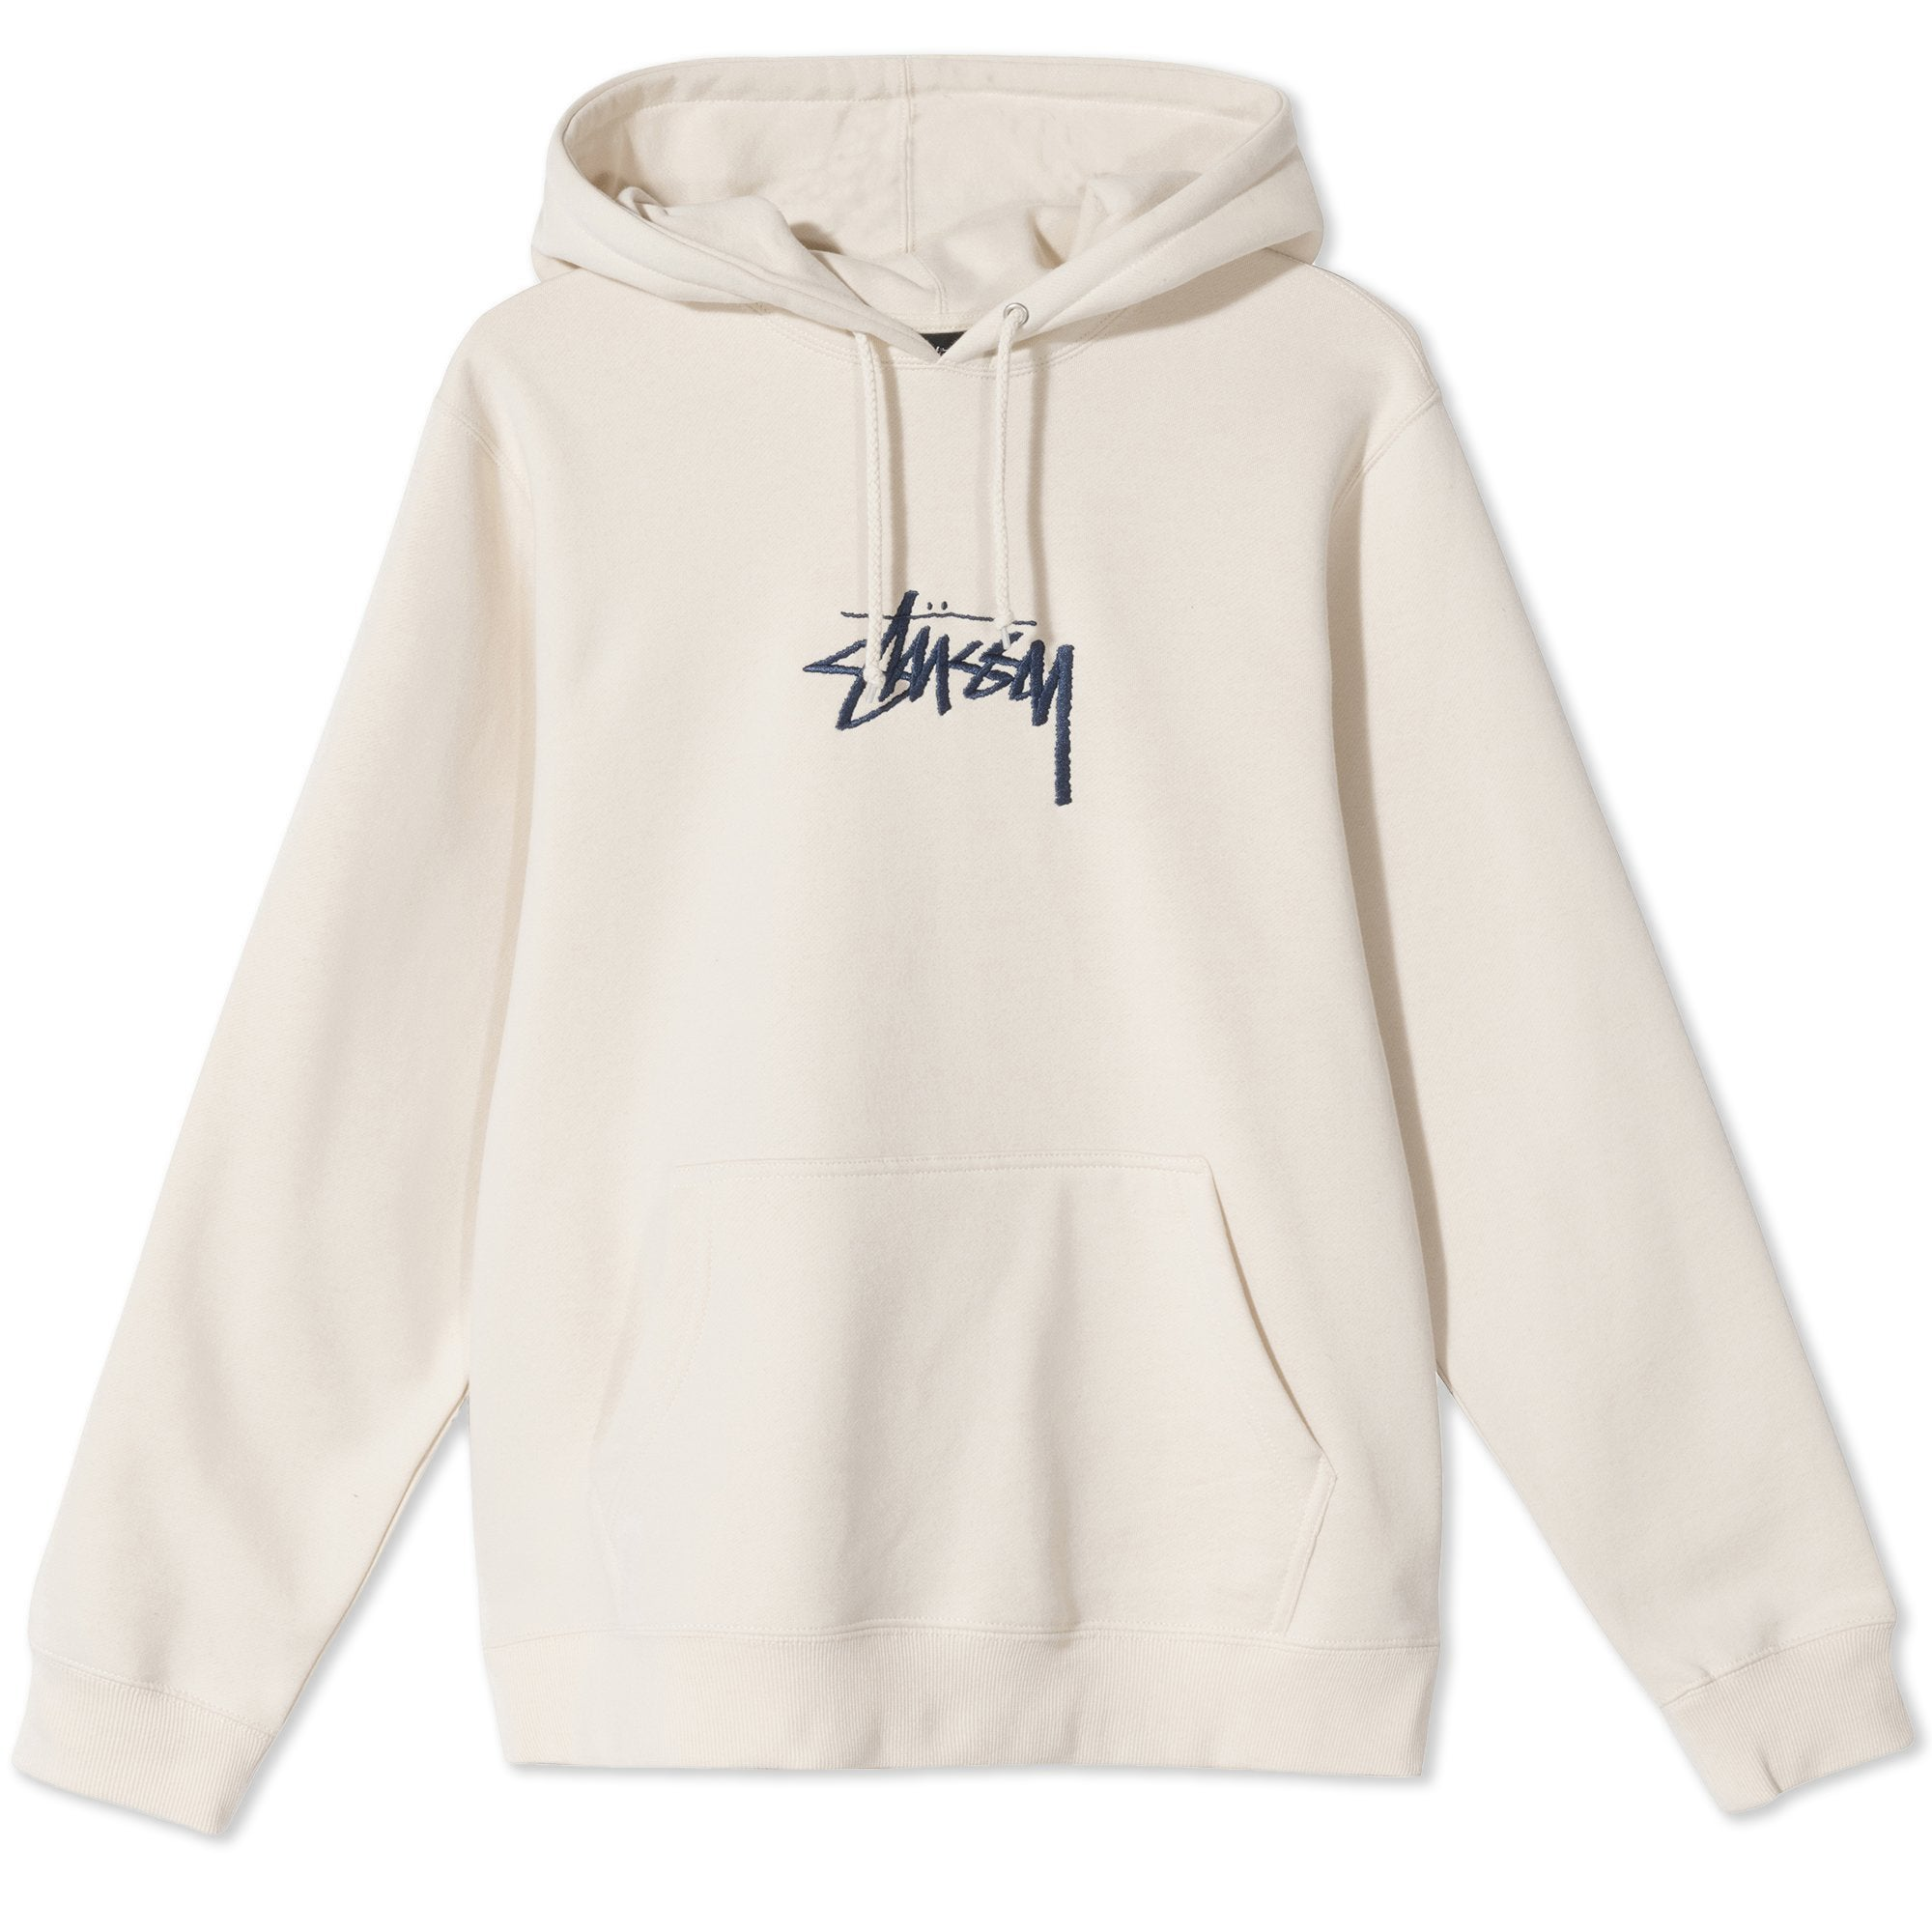 Stussy Stock Logo Applique Hoodie Cement